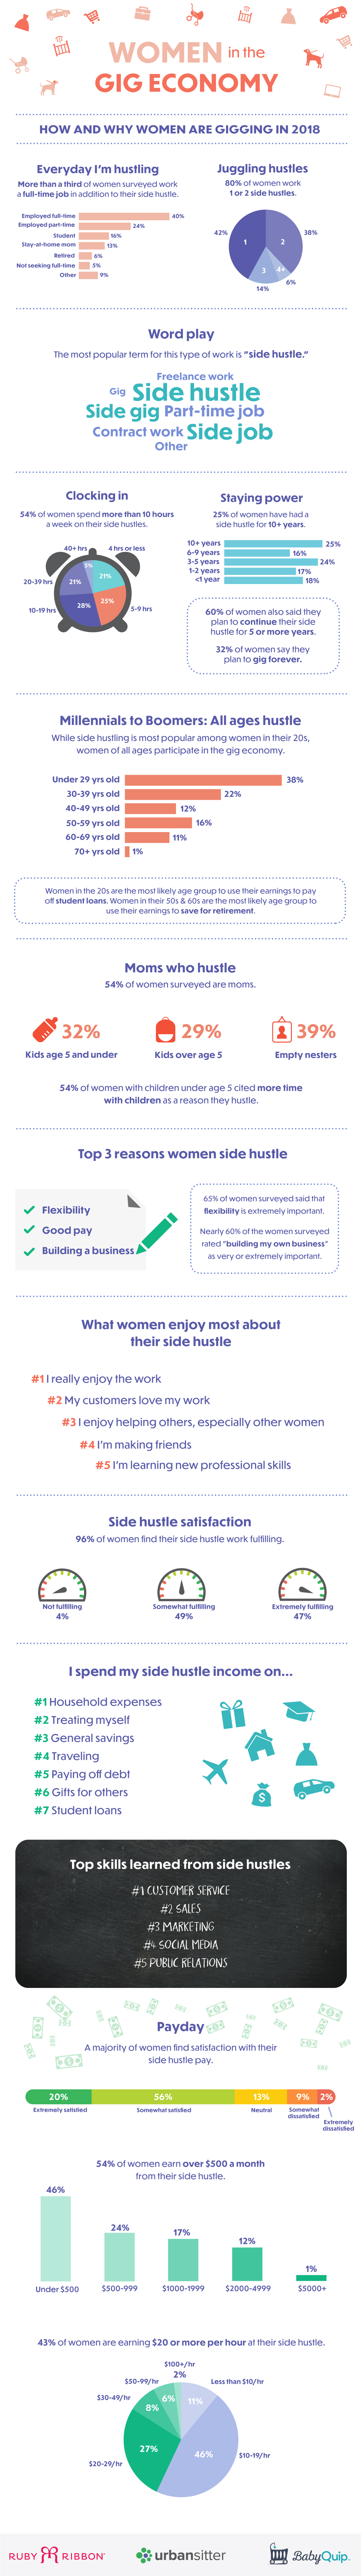 Women in the Gig Economy 2018 - BabyQuip